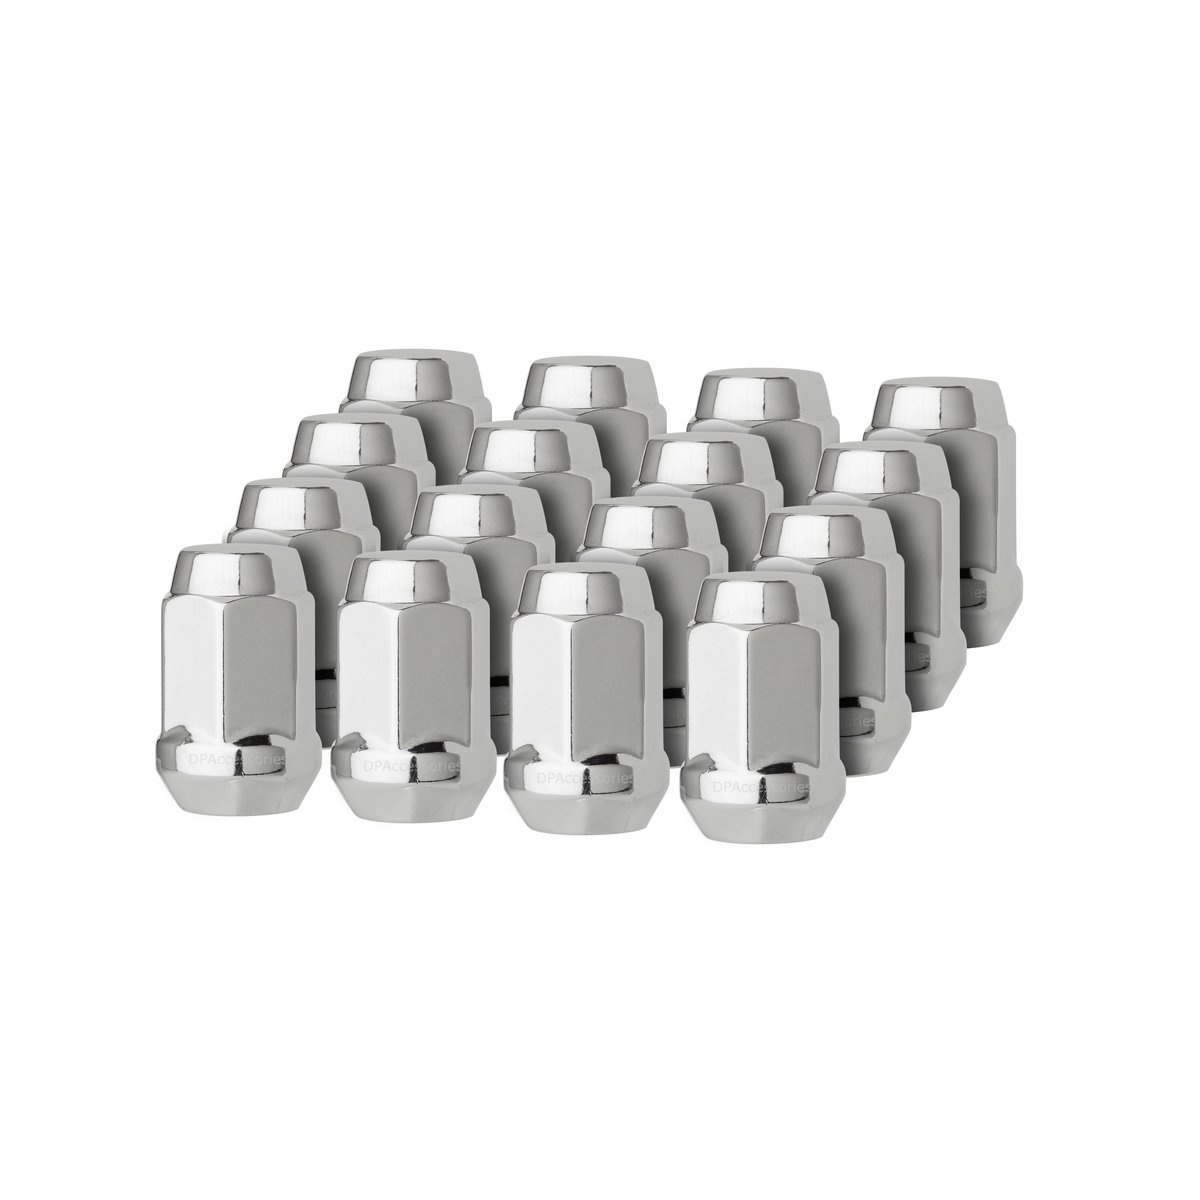 DPAccessories LCB3B6HC-CH04016 16 Chrome 12x1.5 Closed End Bulge Acorn Lug Nuts - Cone Seat - 19mm Hex Wheel Lug Nut